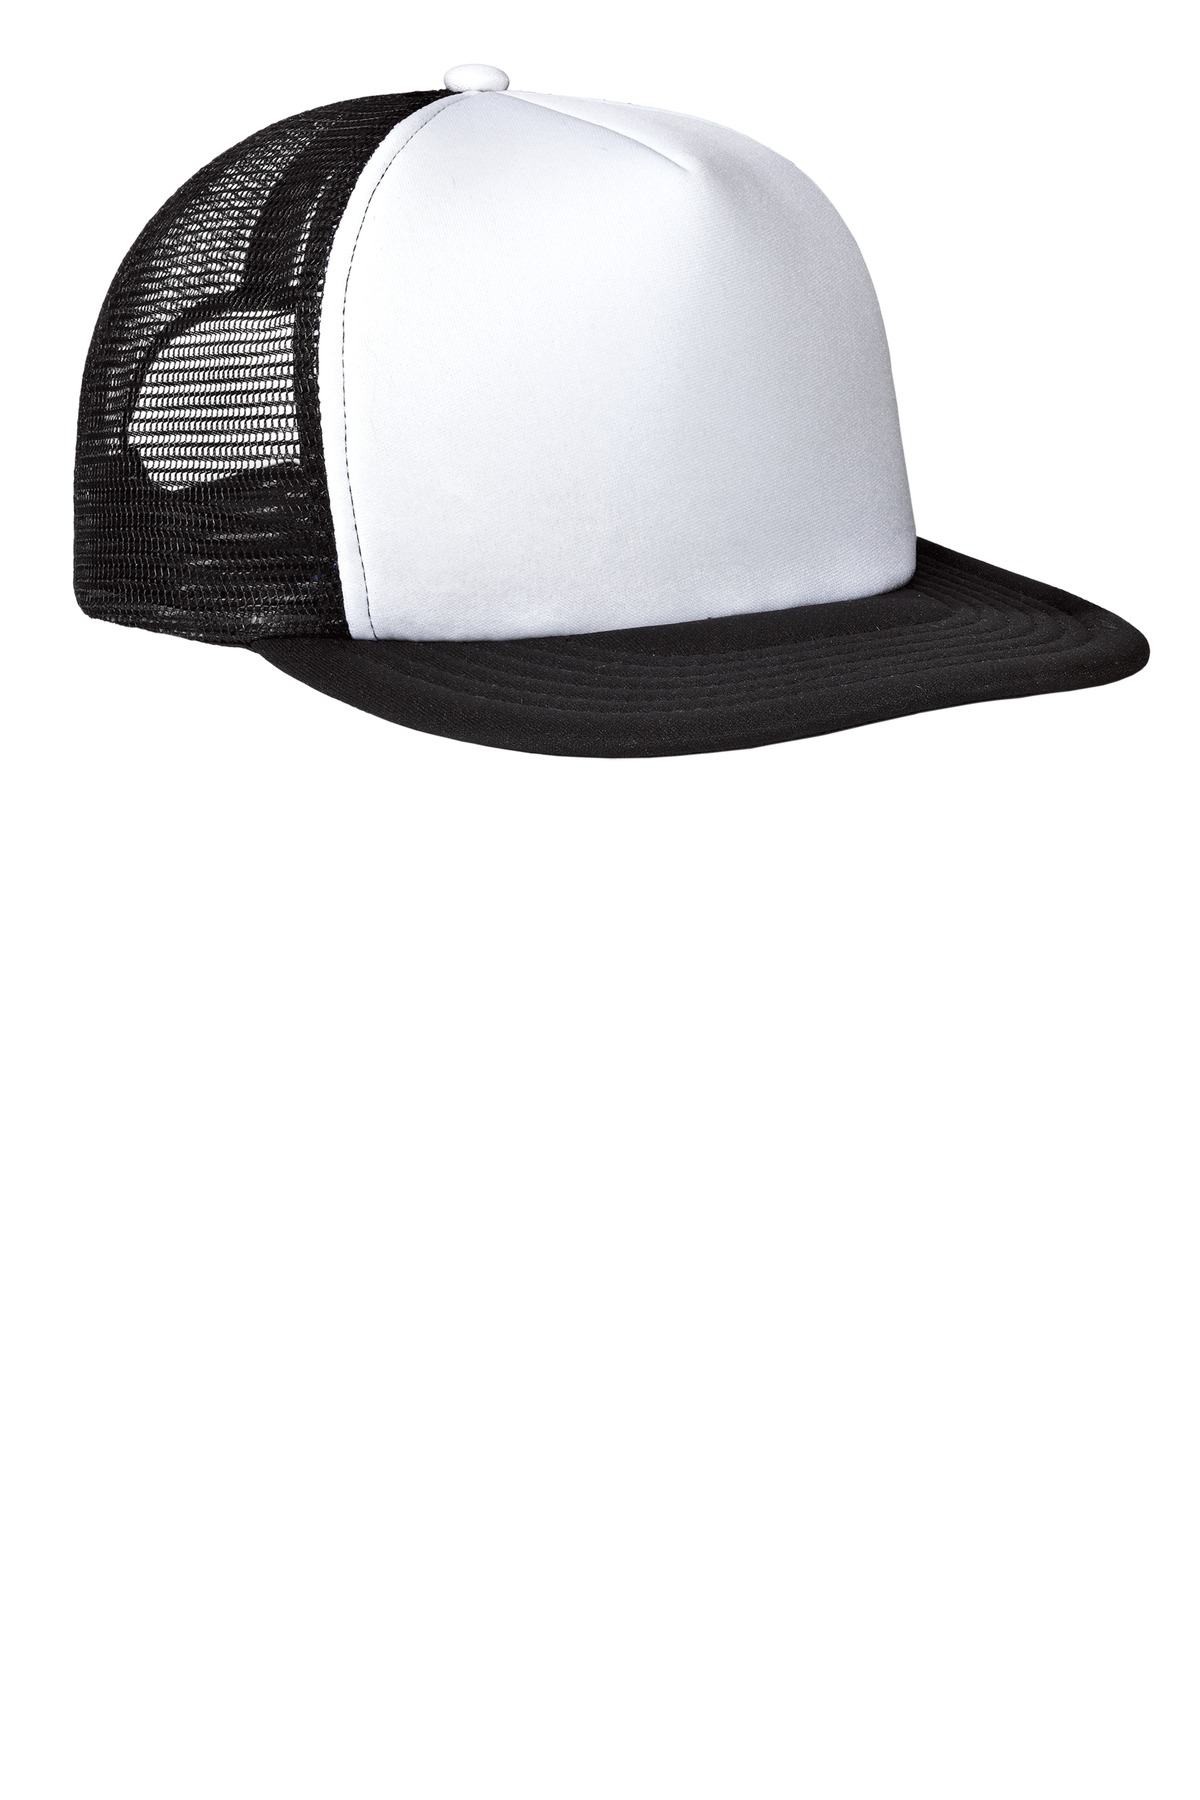 District ®  Flat Bill Snapback Trucker Cap. DT624 - White